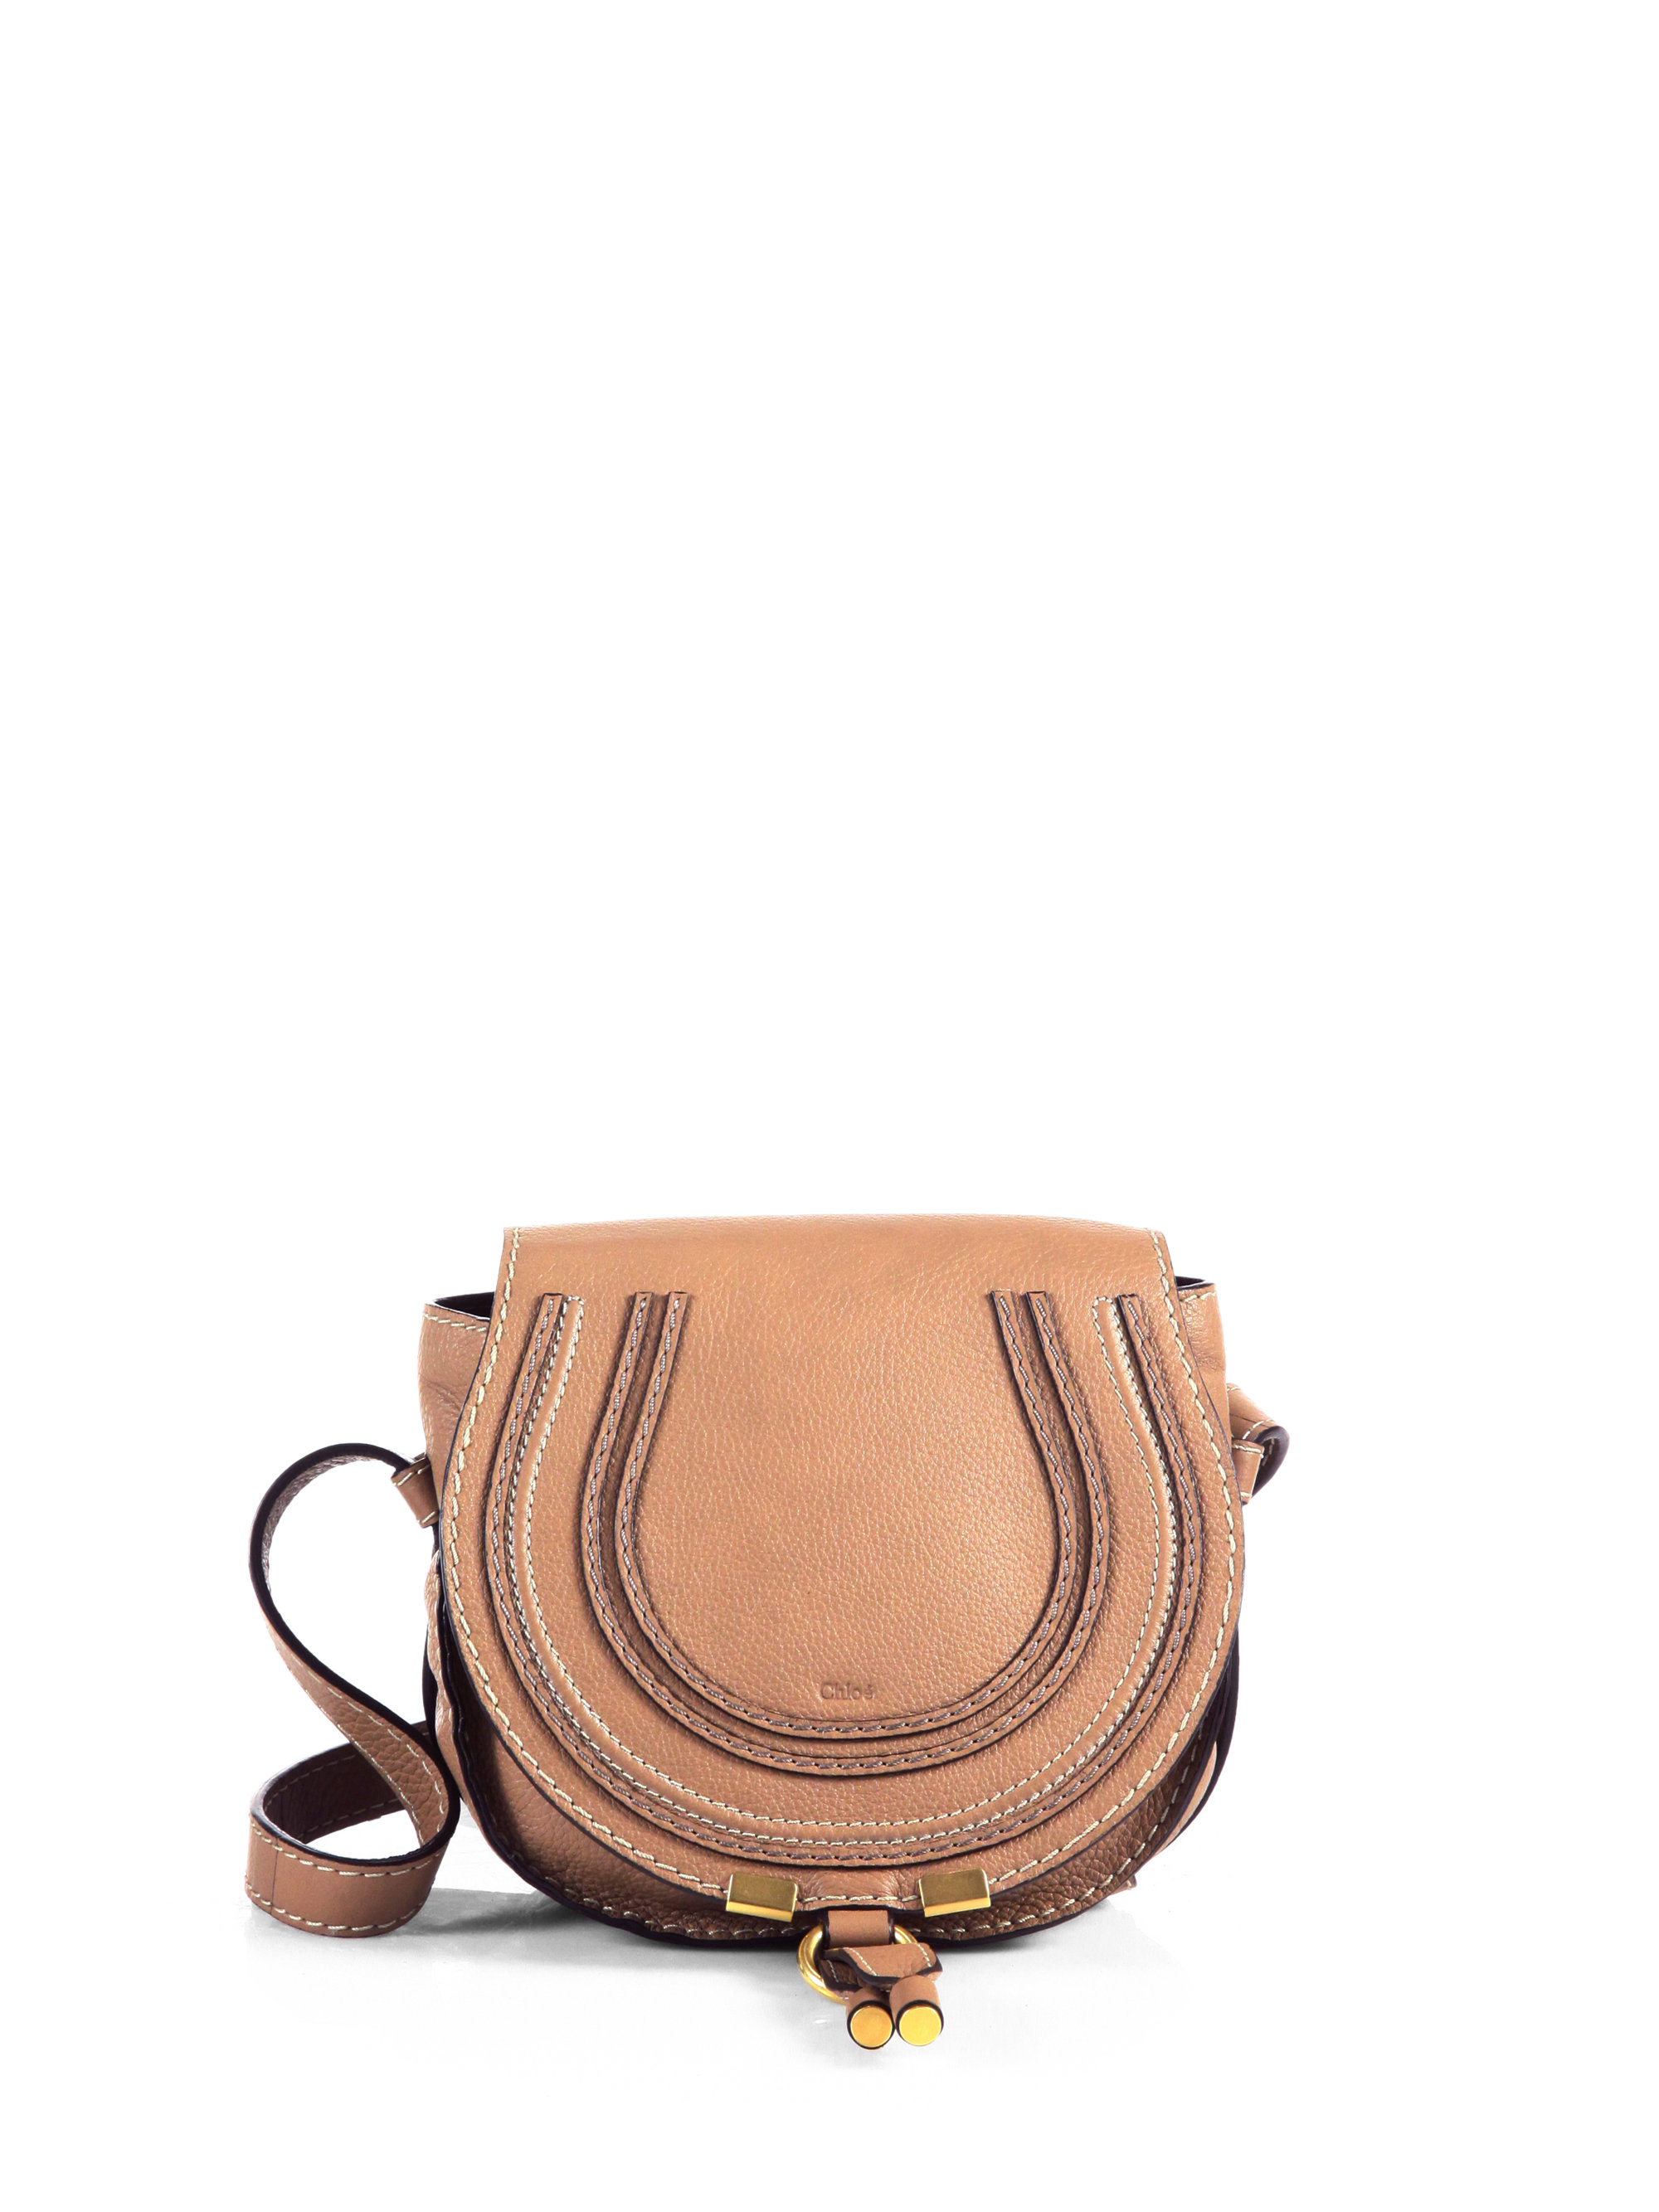 imitation chloe bags - Chlo�� Marcie Small Crossbody Bag in Brown (NUT) | Lyst